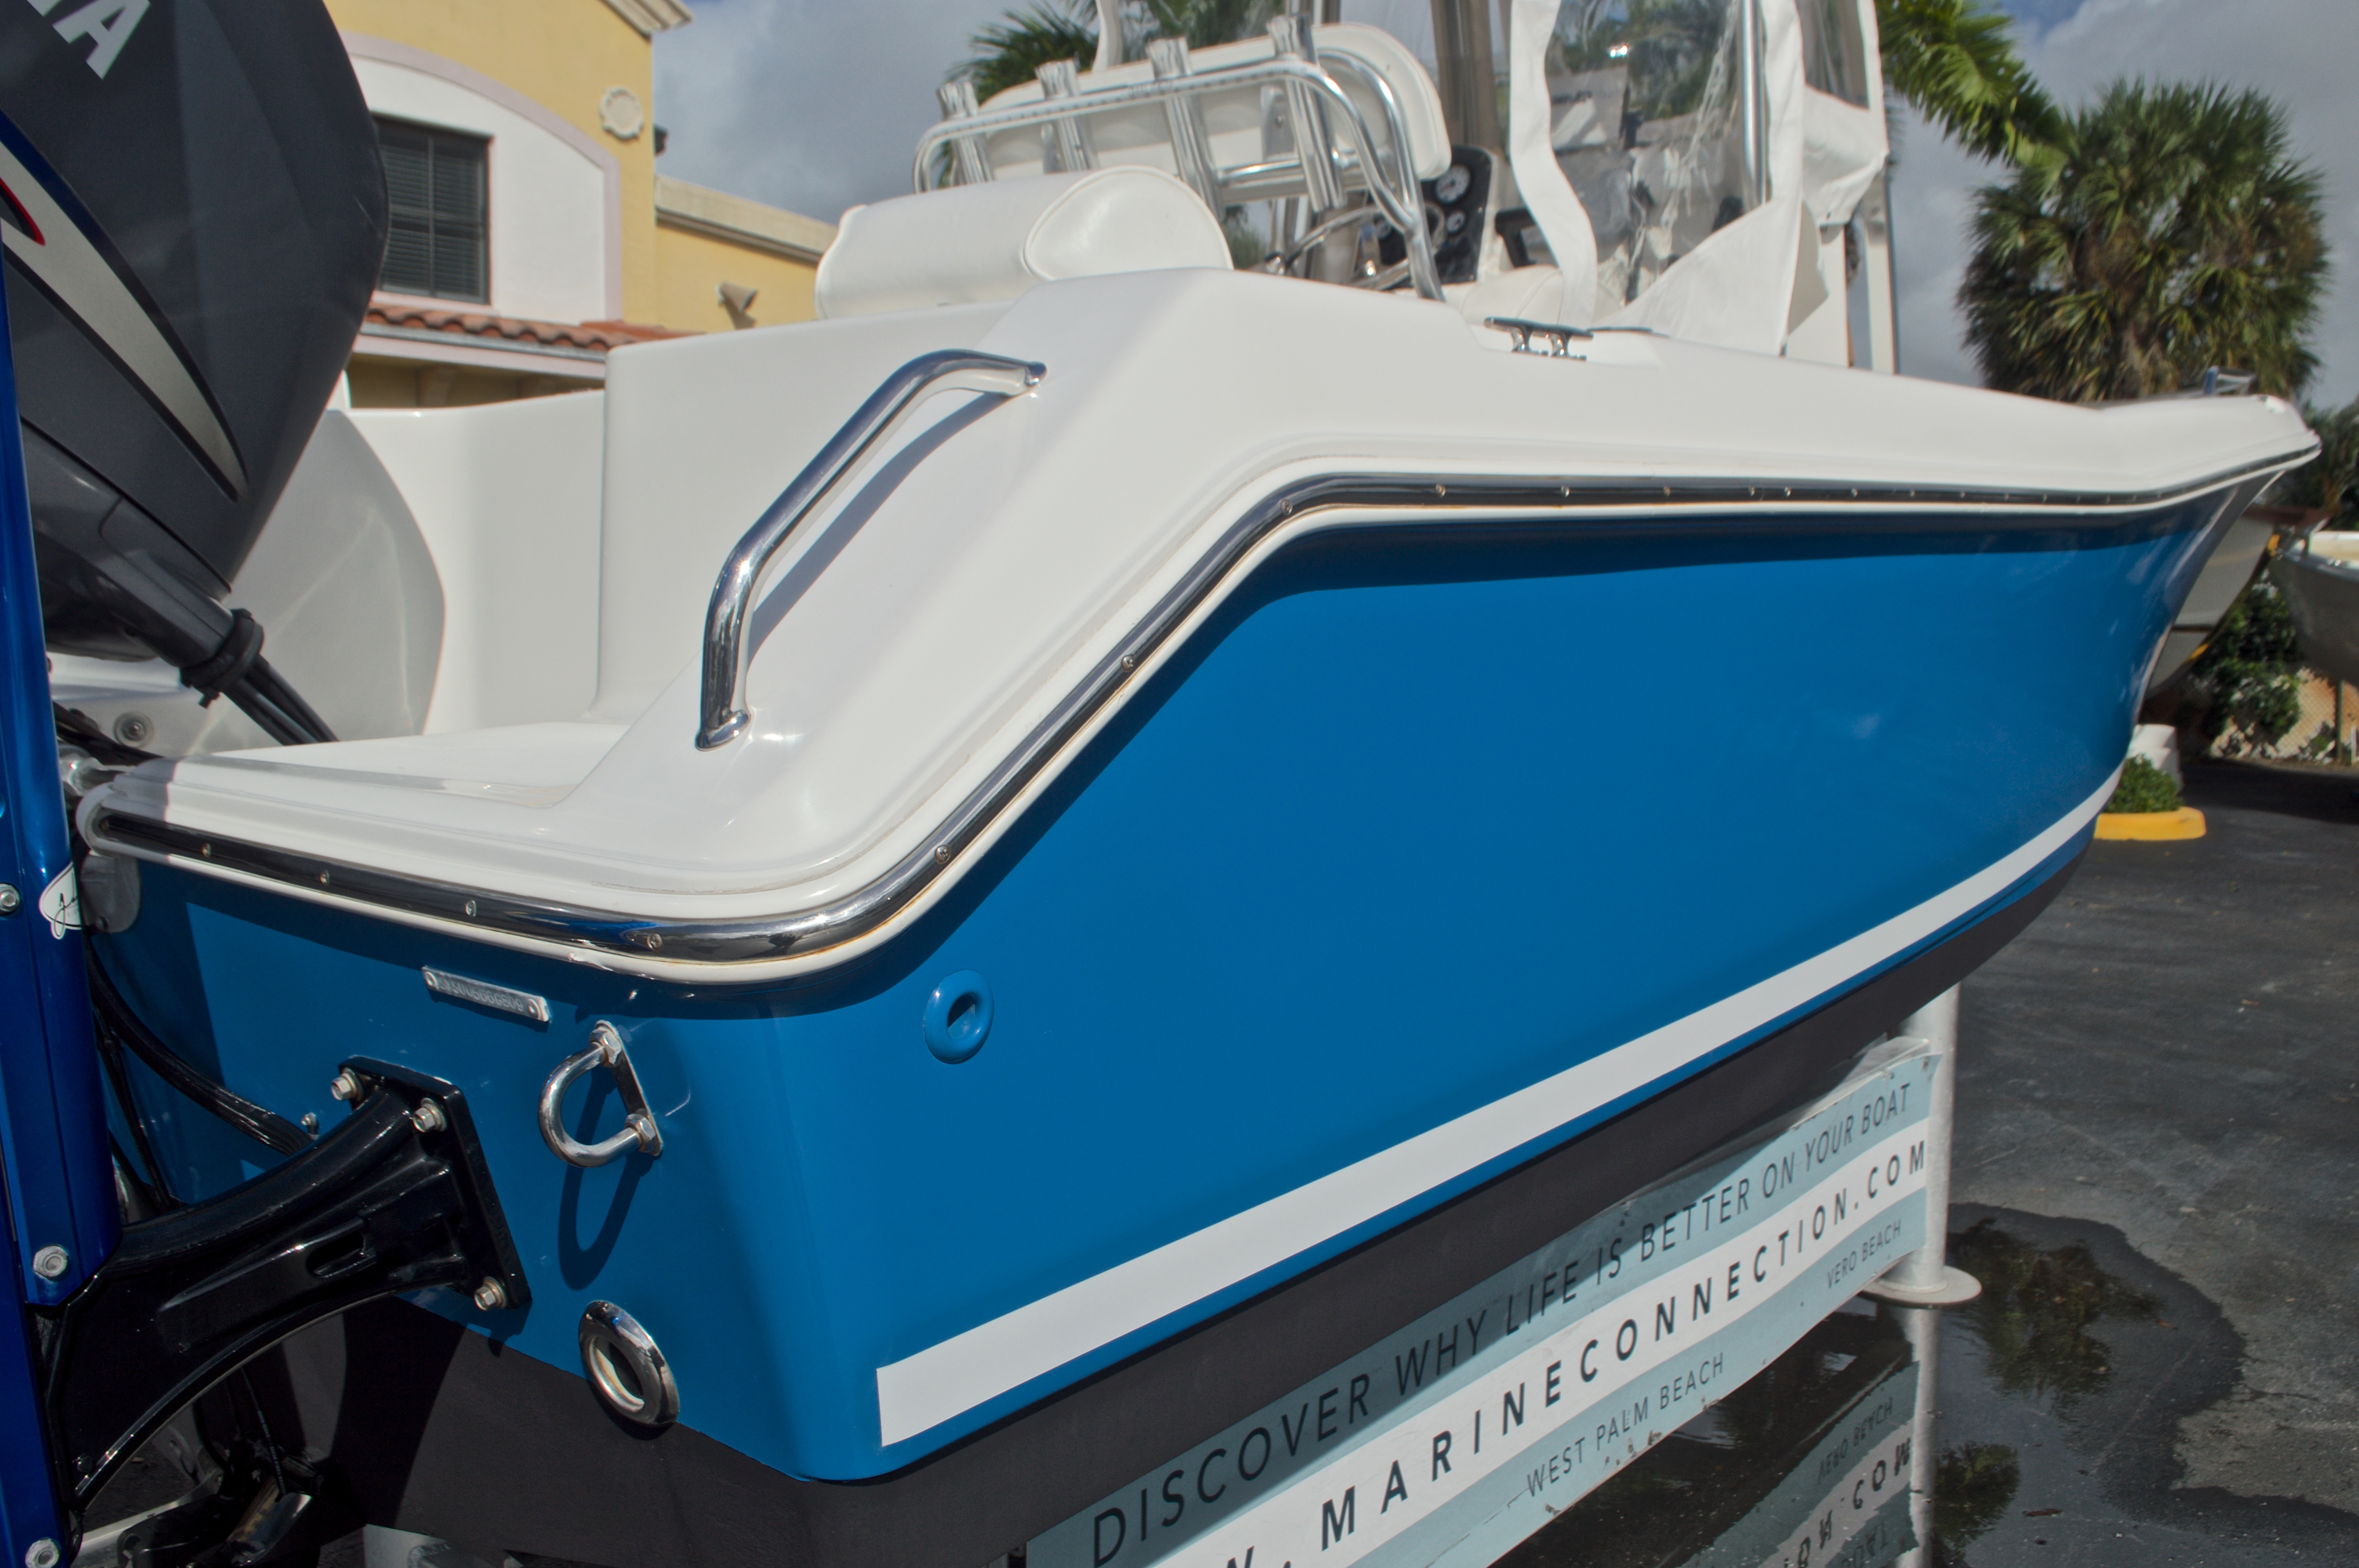 Thumbnail 13 for Used 2009 Sea Hunt 207 Triton boat for sale in West Palm Beach, FL